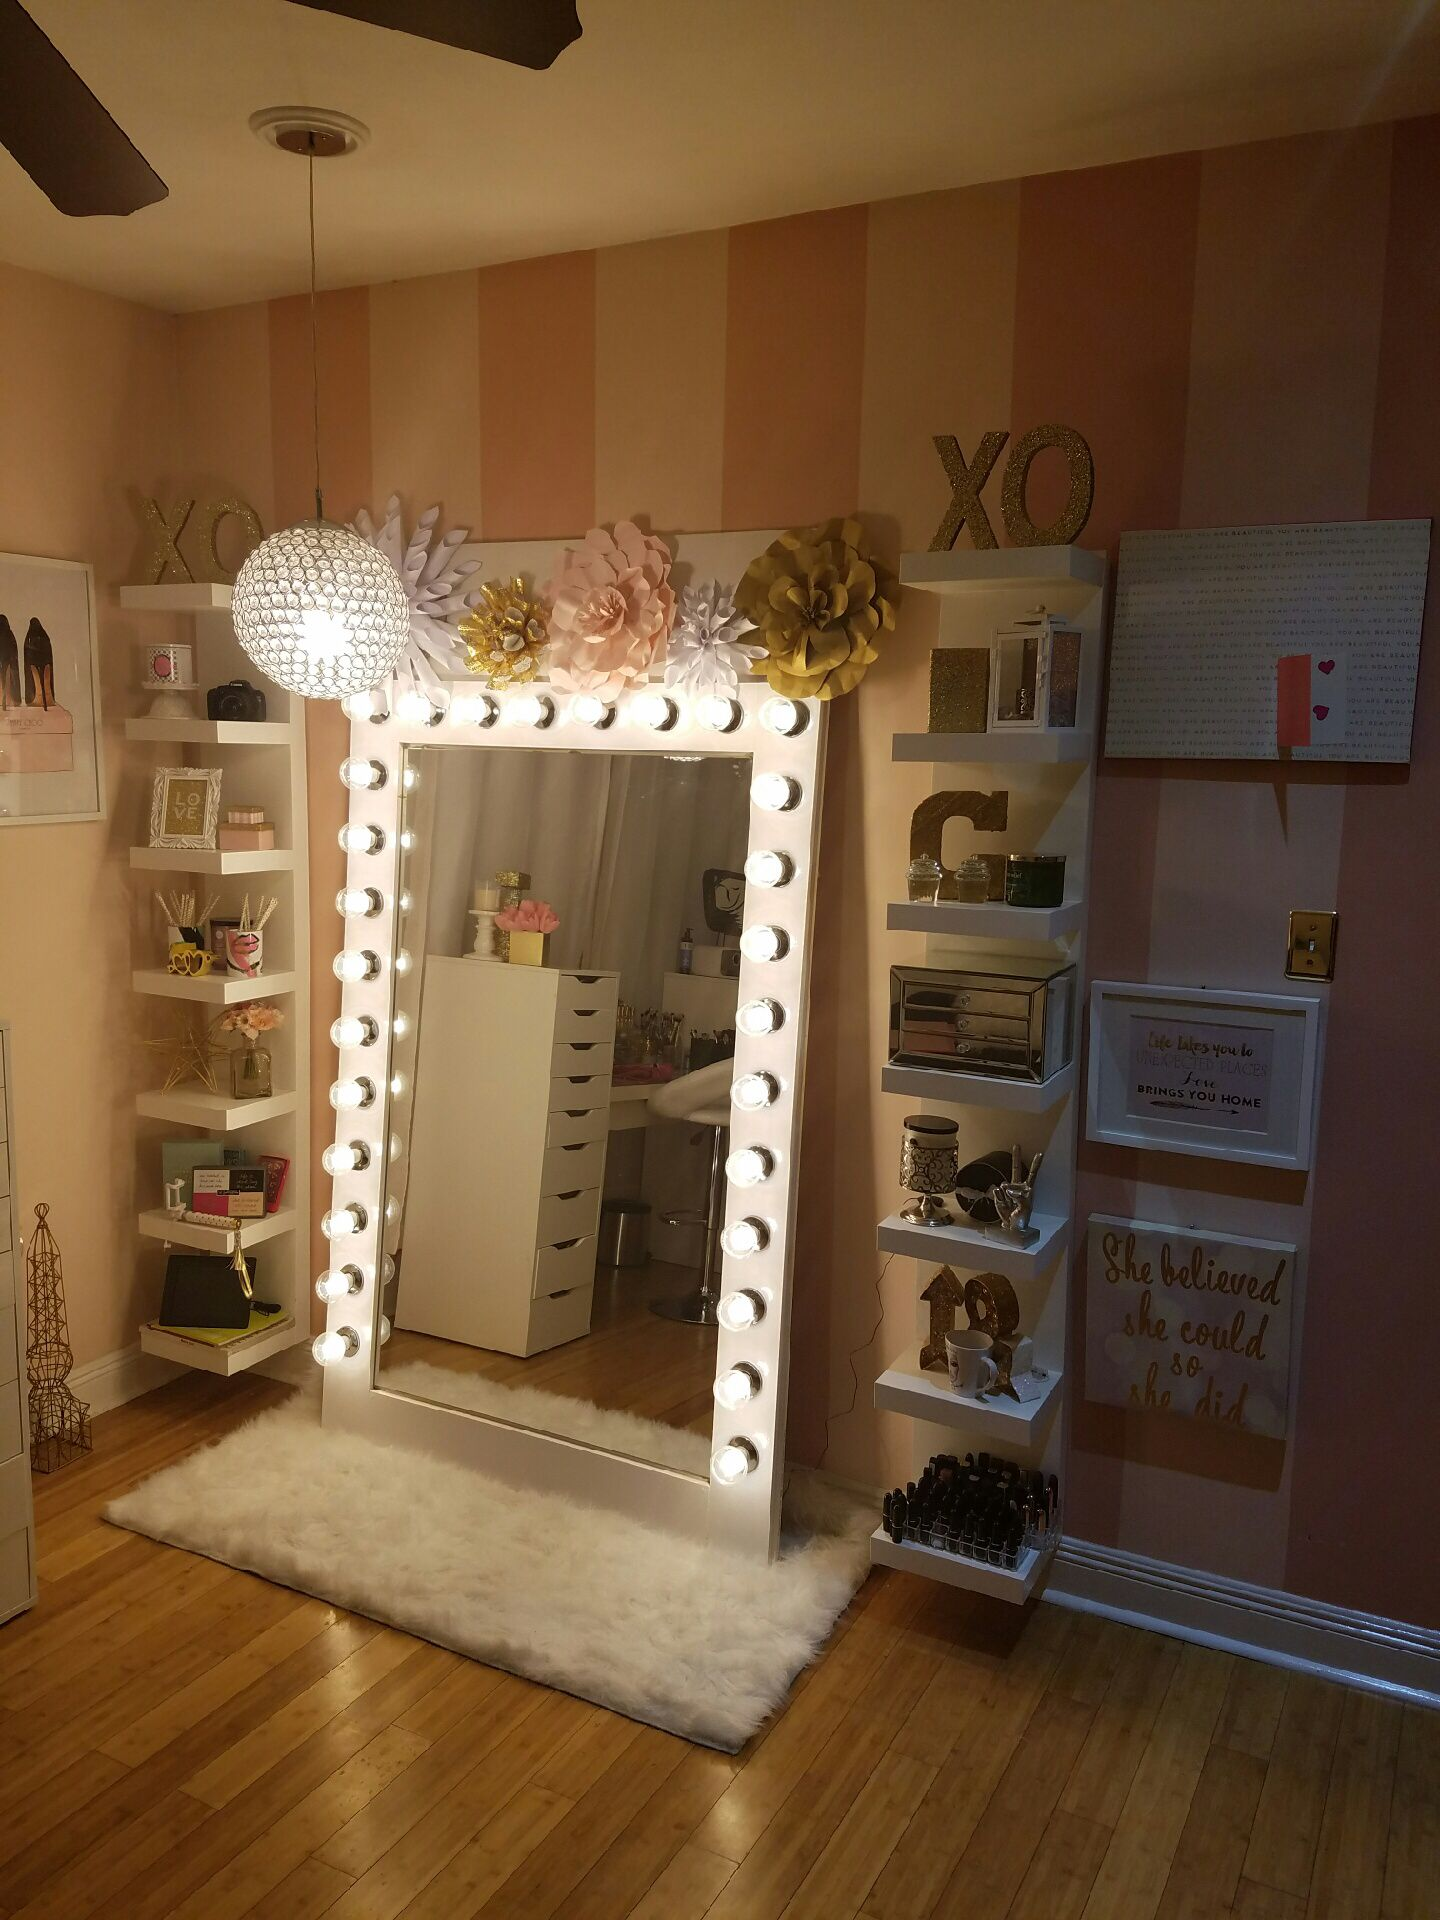 17 diy vanity mirror ideas to make your room more beautiful makeup storage with diy style hollywood glam light aloadofball Image collections